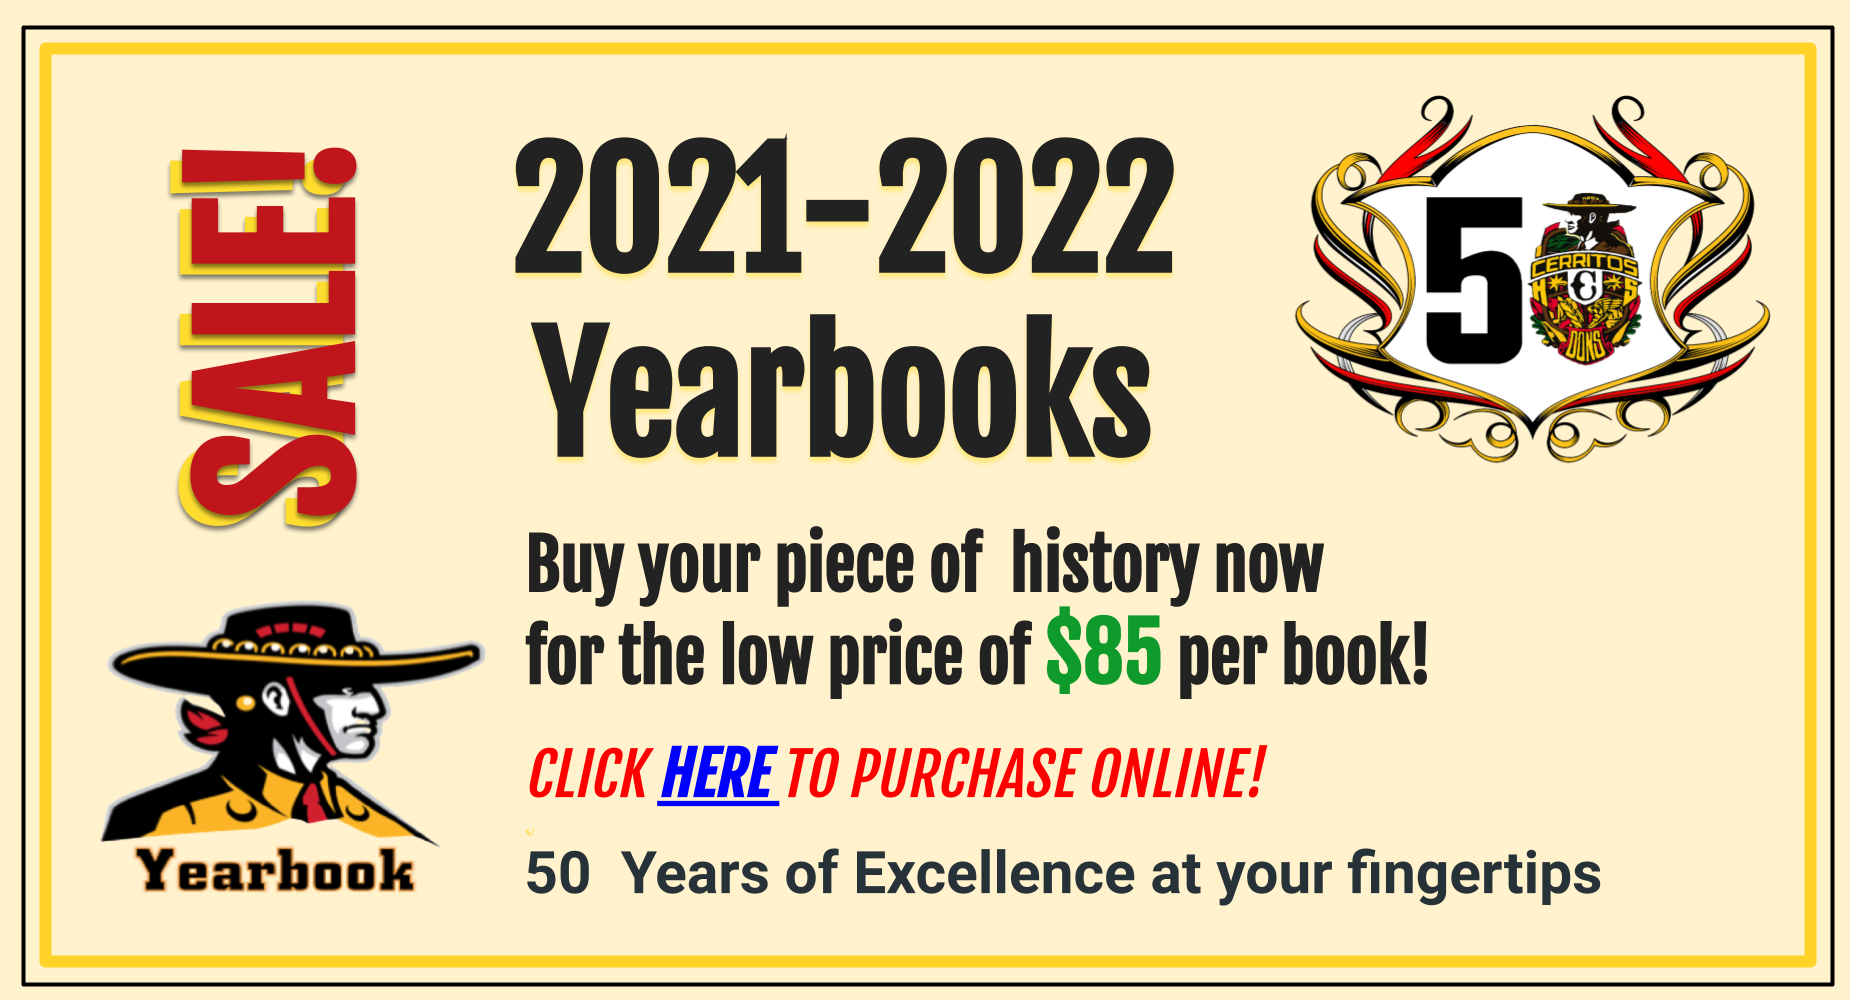 Buy your piece of  history now  for the low price of $85 per book!  CLICK HERE TO PURCHASE ONLINE!  %)  50  Years of Excellence at your fingertips     Deadline to purchase online is Feb 1, 2022